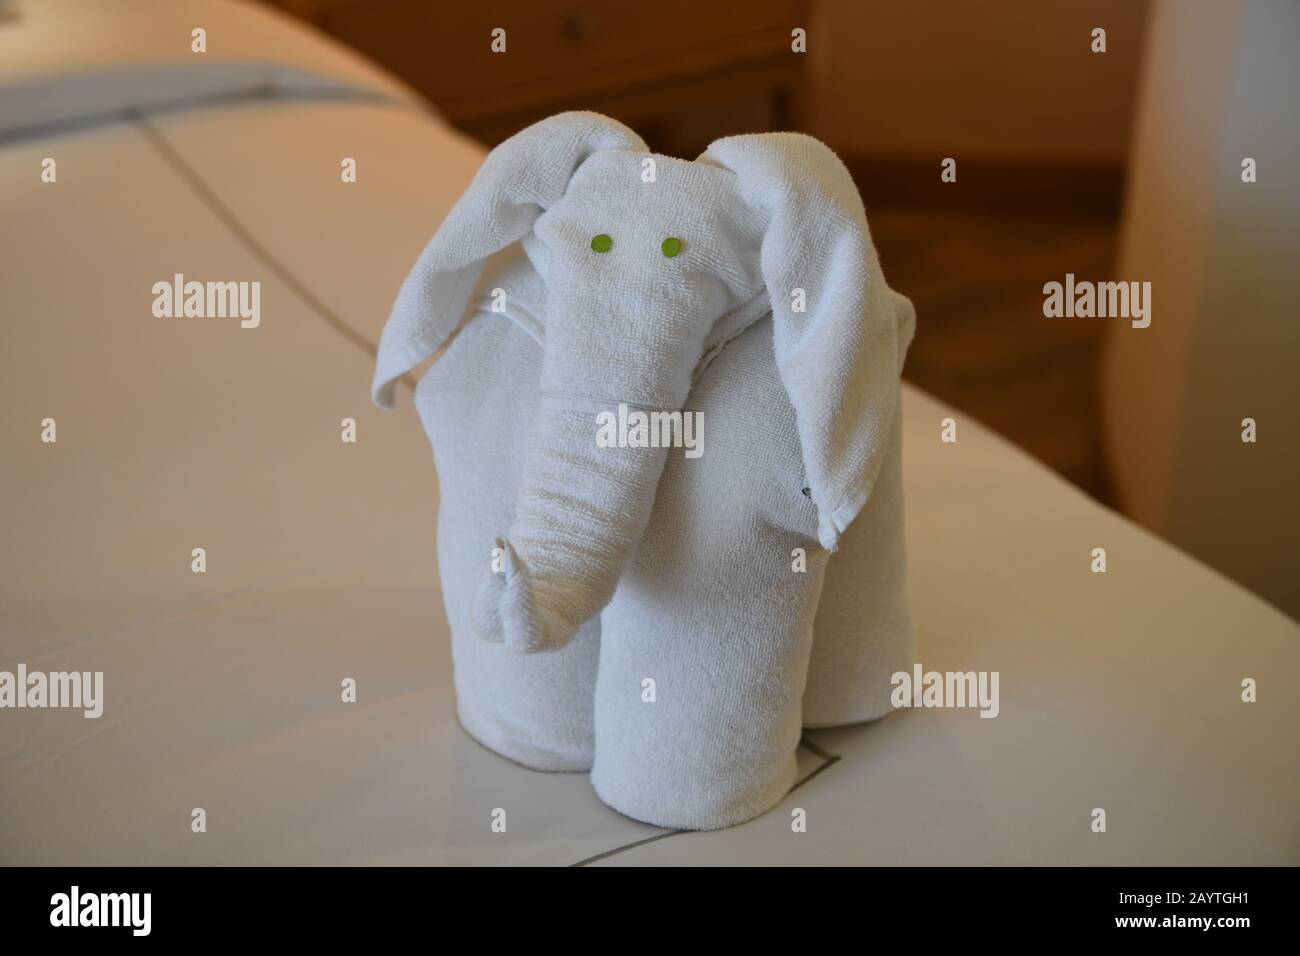 Towel Folding High Resolution Stock Photography And Images Alamy